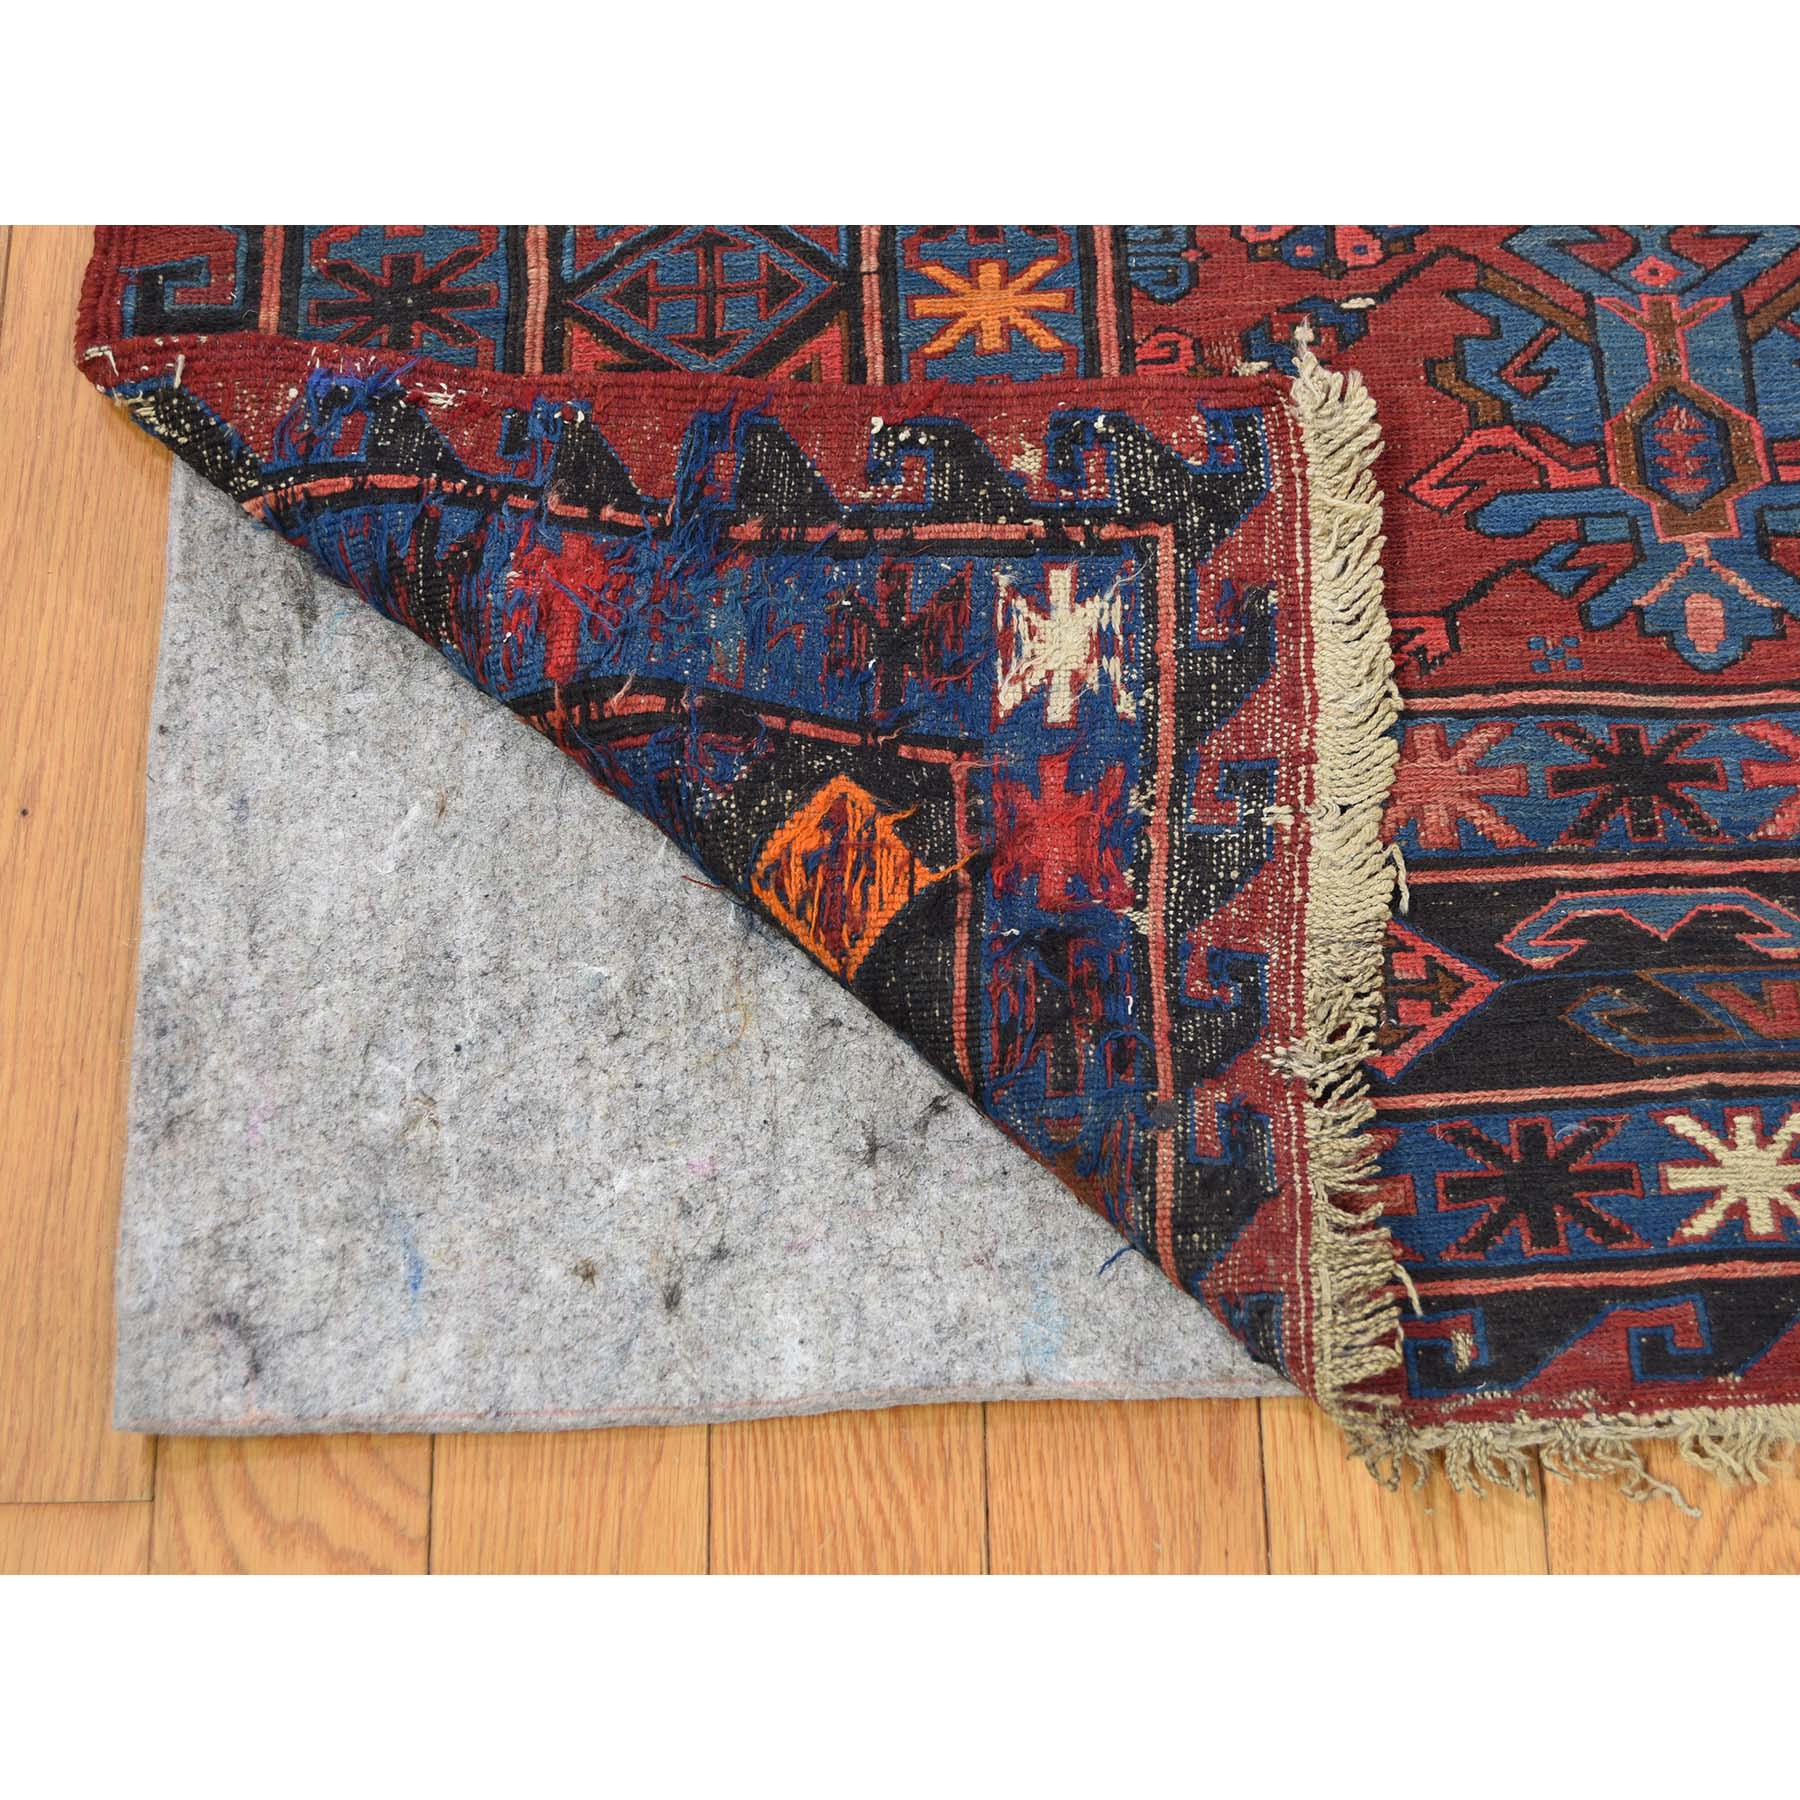 10-1 x13-7  Antique Caucasian Soumak Good Condition Pure Wool Hand-Knotted Oriental Rug